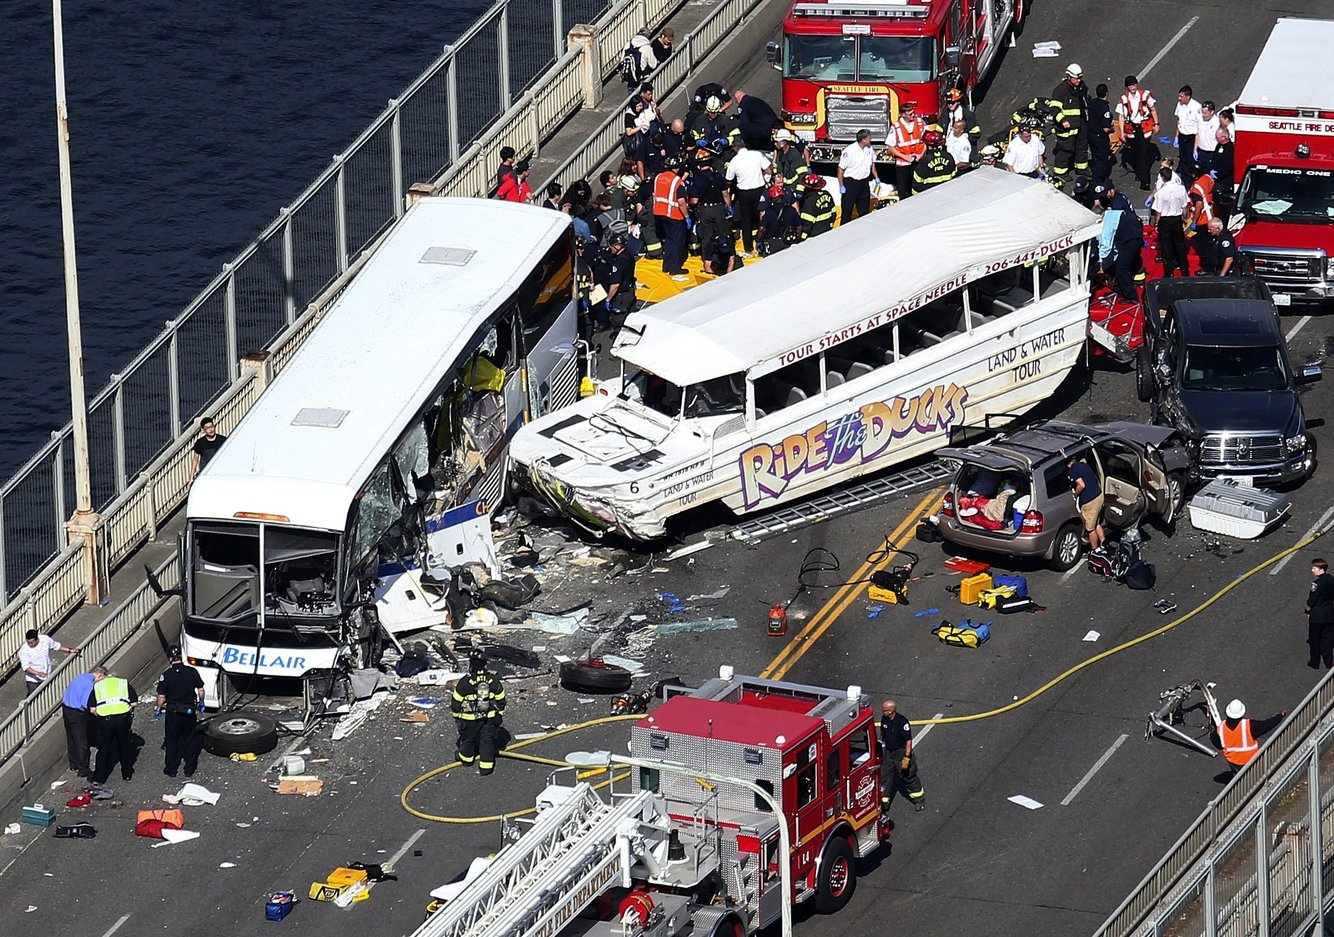 A Ride the Ducks vehicle collided with a charter bus on Seattle's Aurora Bridge, killing five students and injuring dozens of others. (Ken Lambert / The Seattle Times, 2015)